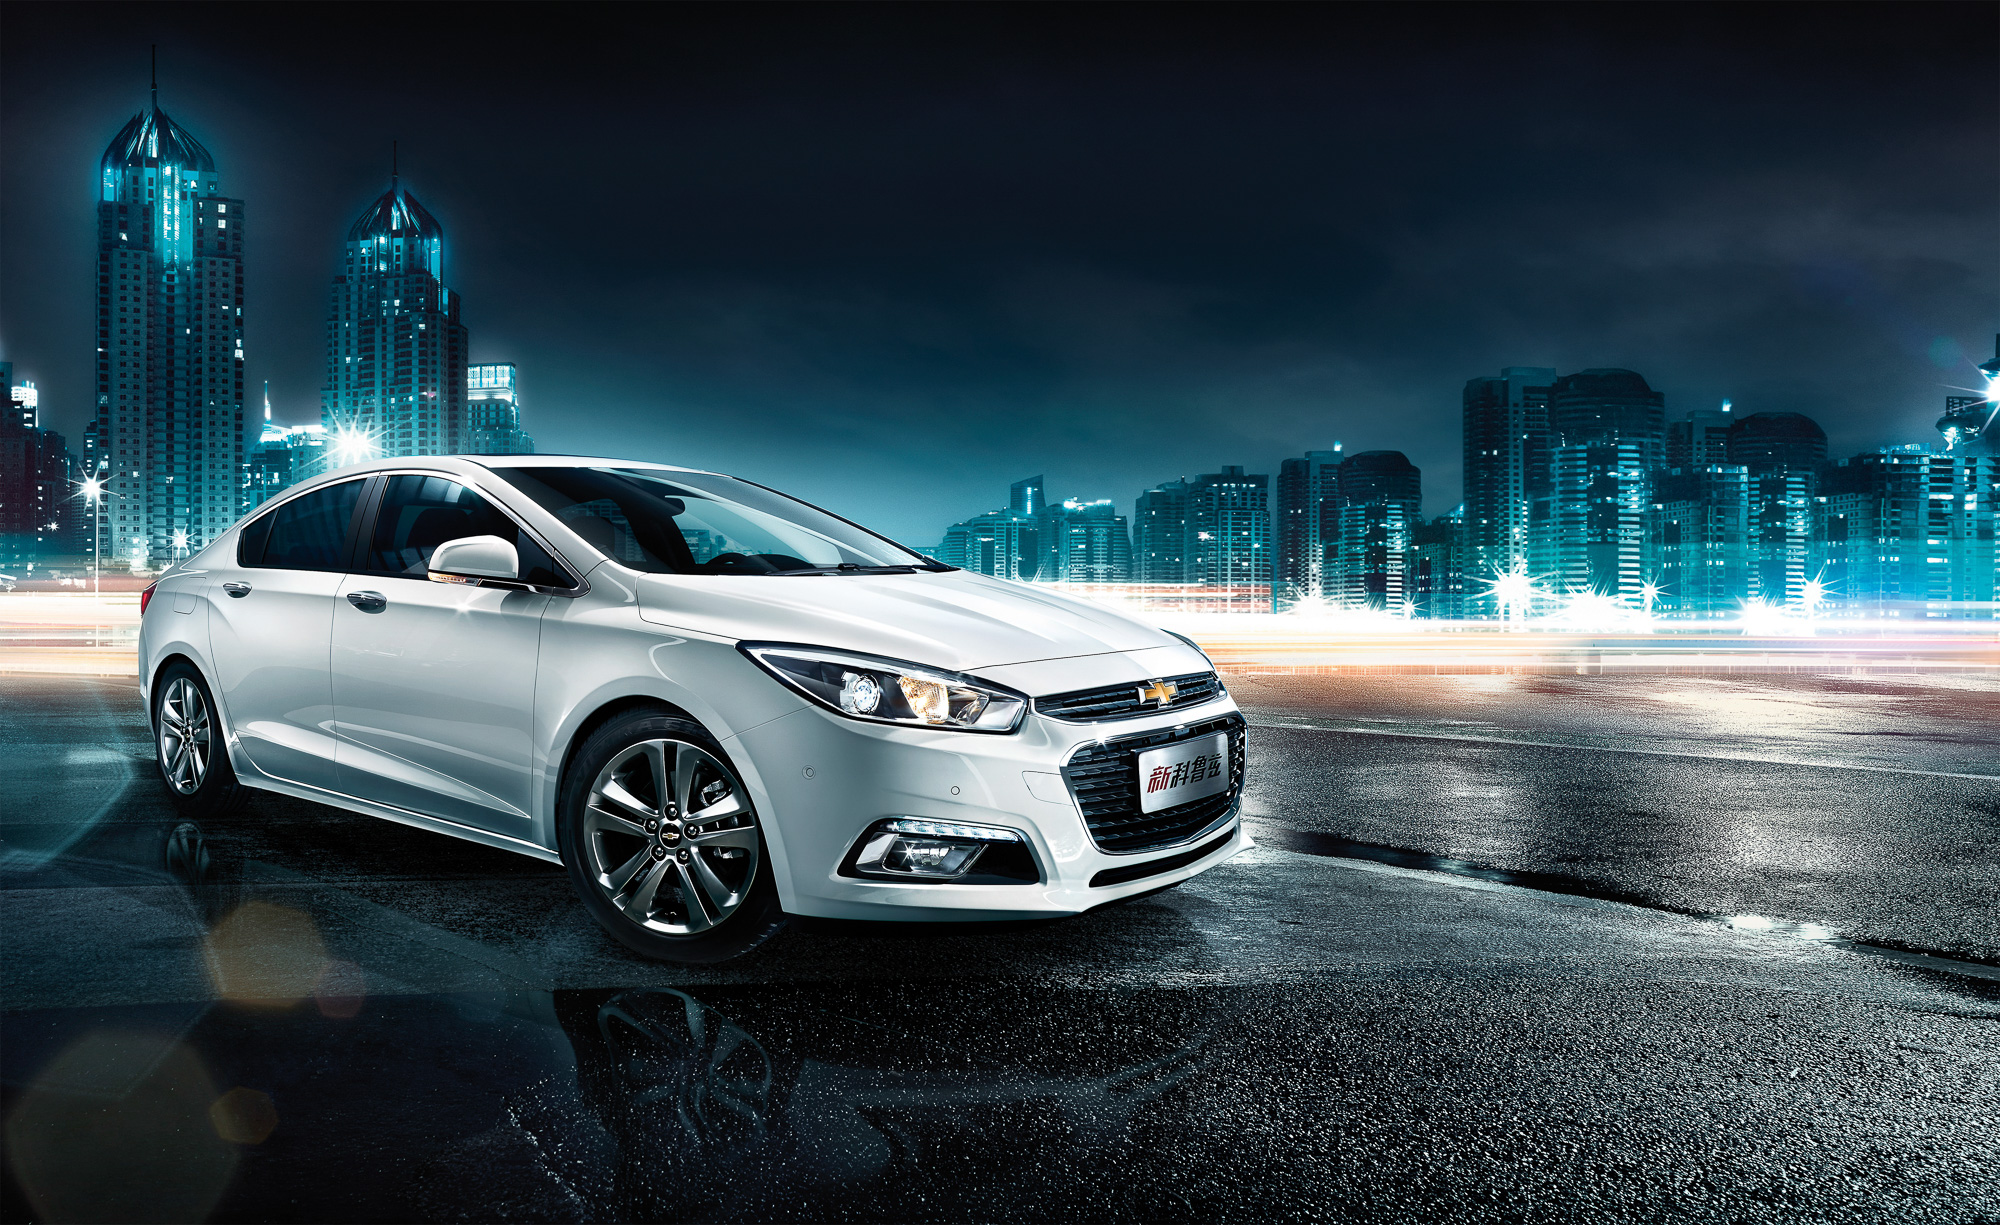 migs-foto-cgi-hong-kong-car-automotive-photography-photographer-2014-gm-shnaghai-chevrolet-2014-Chev-Cruze-2K